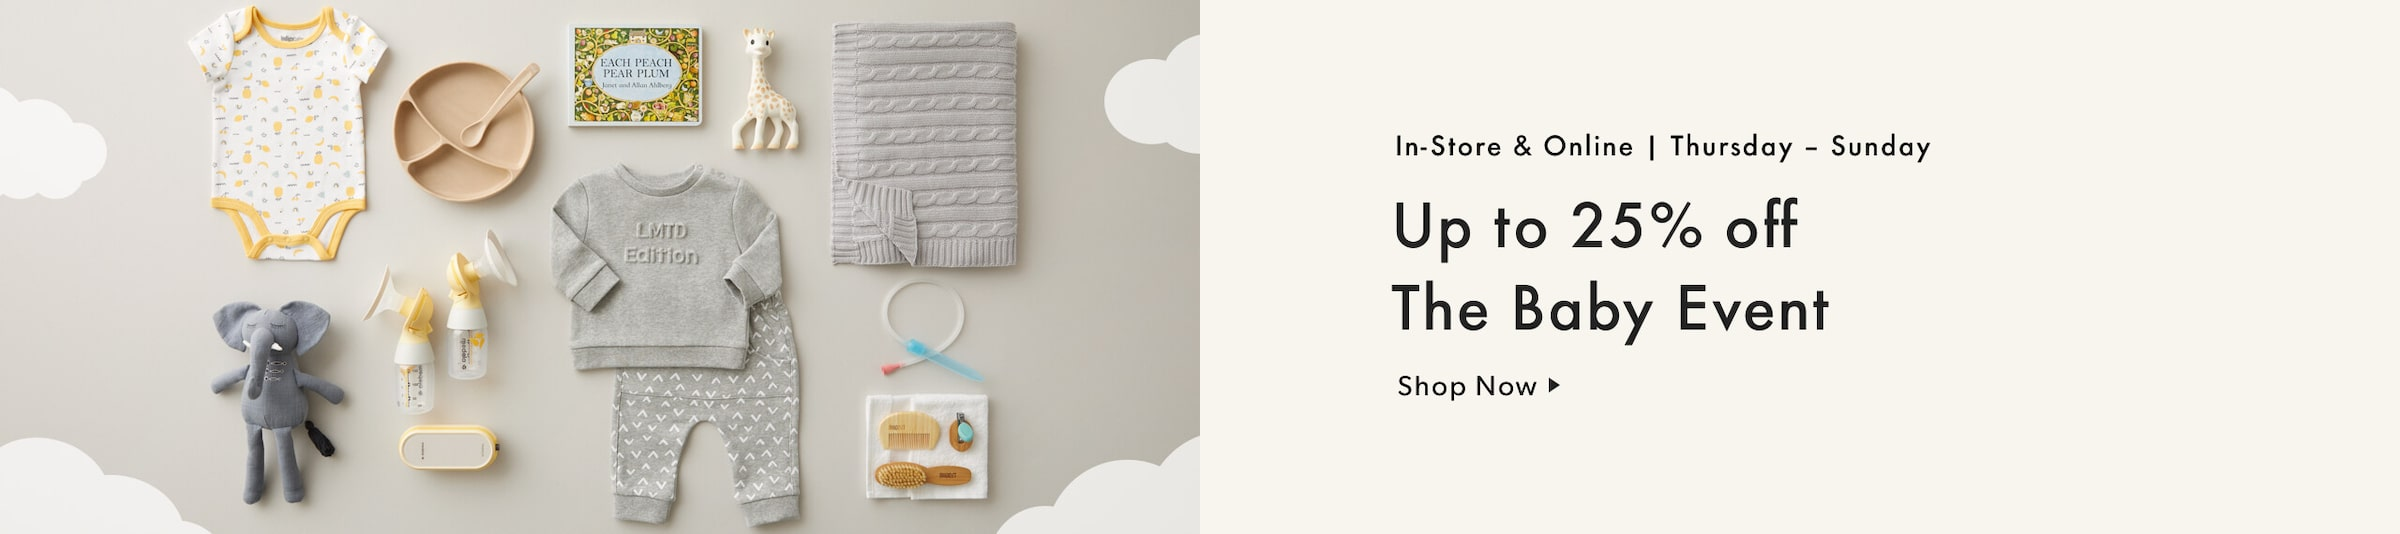 Shop The Baby Event - up to 25% off to Sunday